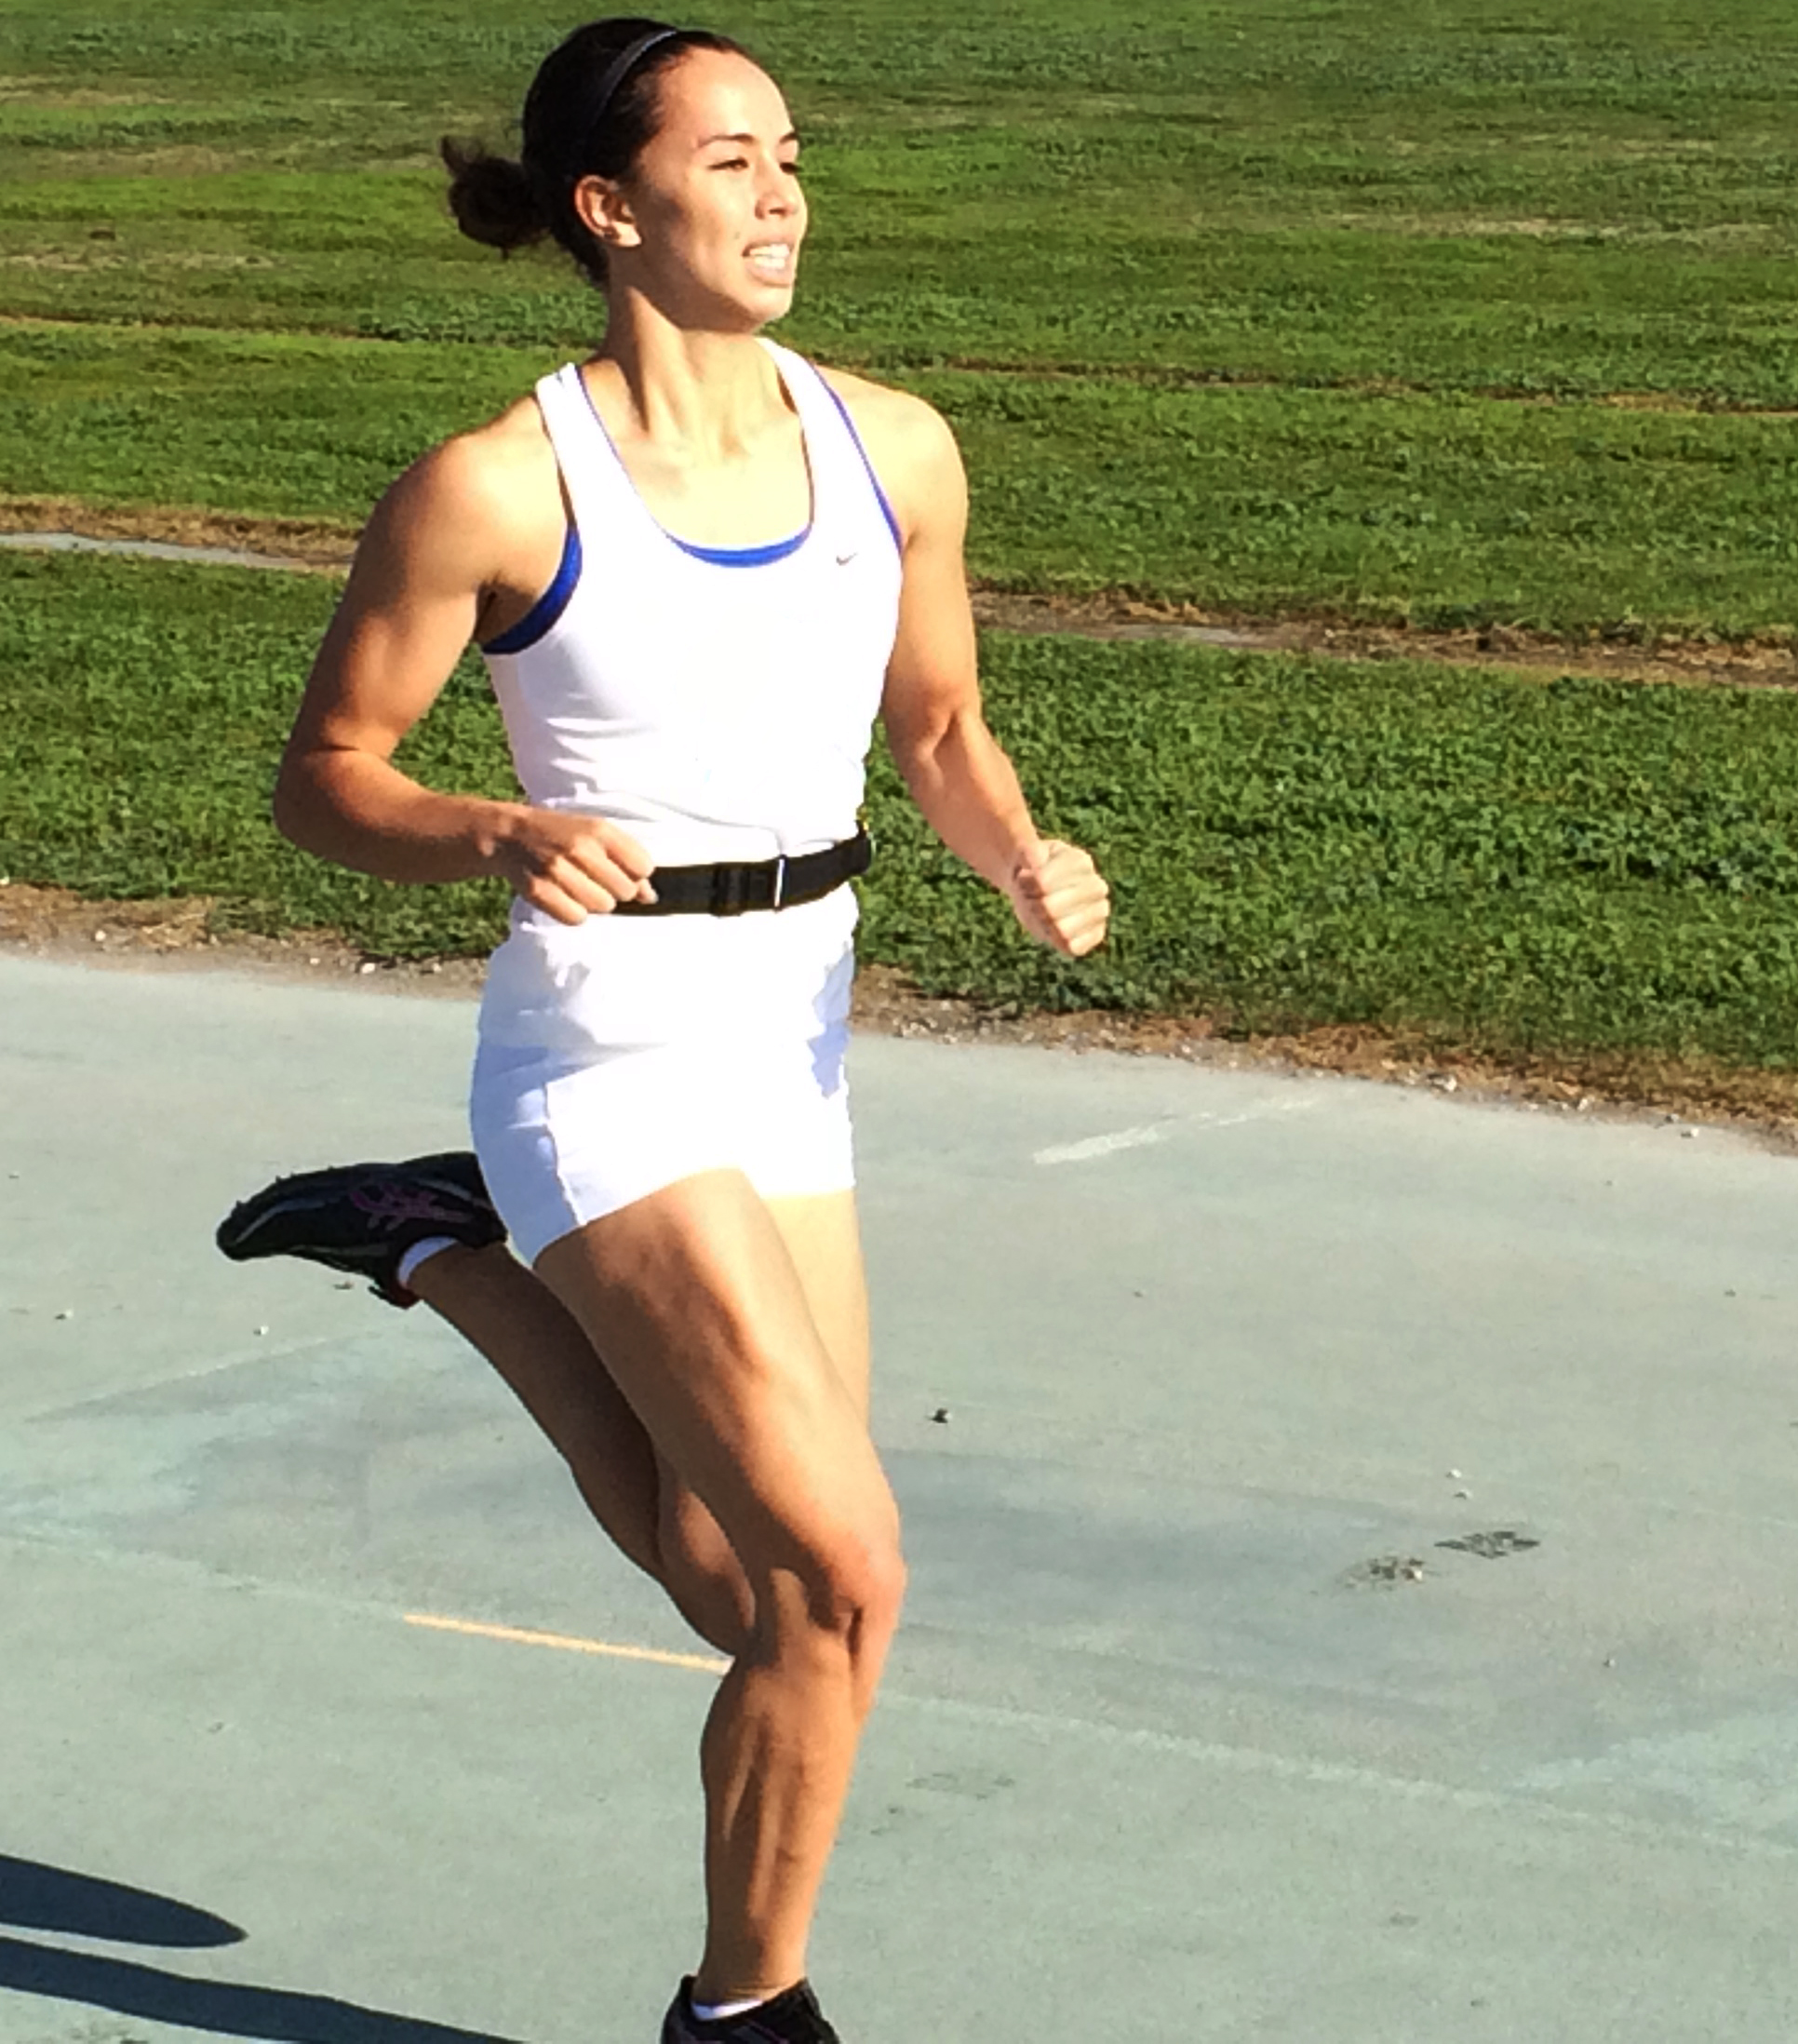 Example of athlete mushing out and collapsing during stance phase of sprinting